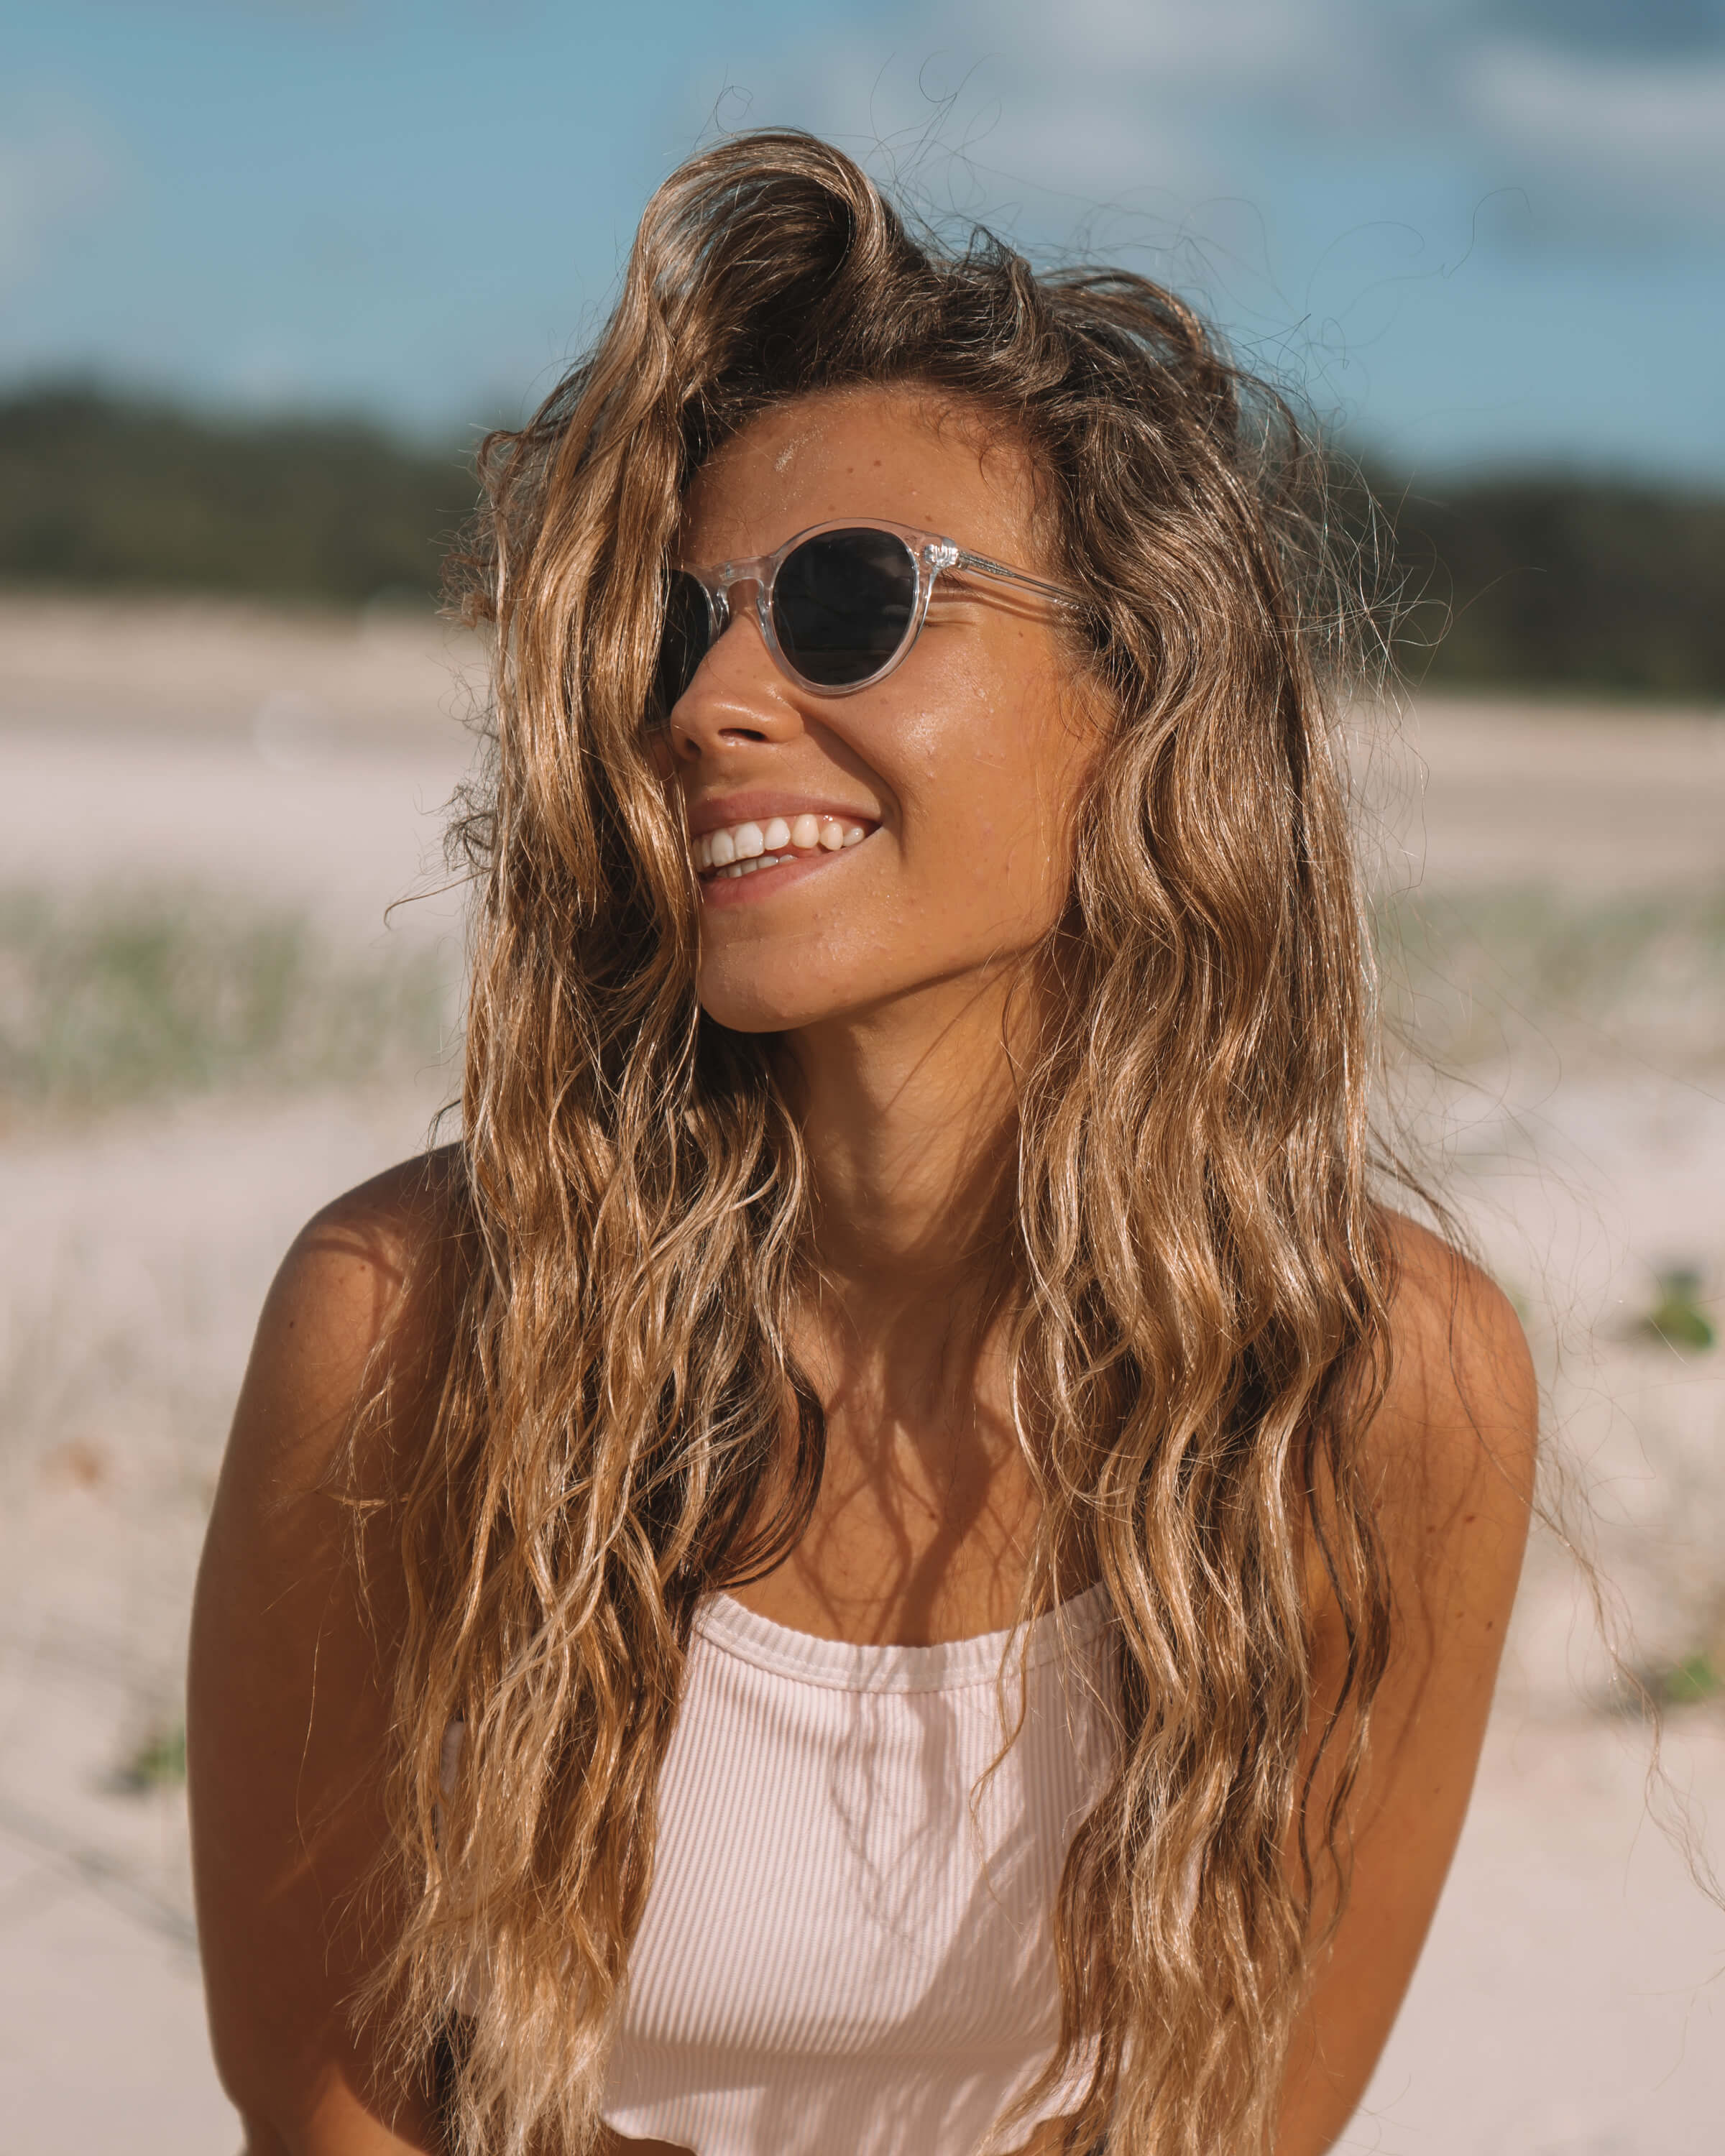 Soda Shades of Summer Australias best sunglasses eyewear online brand – Byron Bay_-11